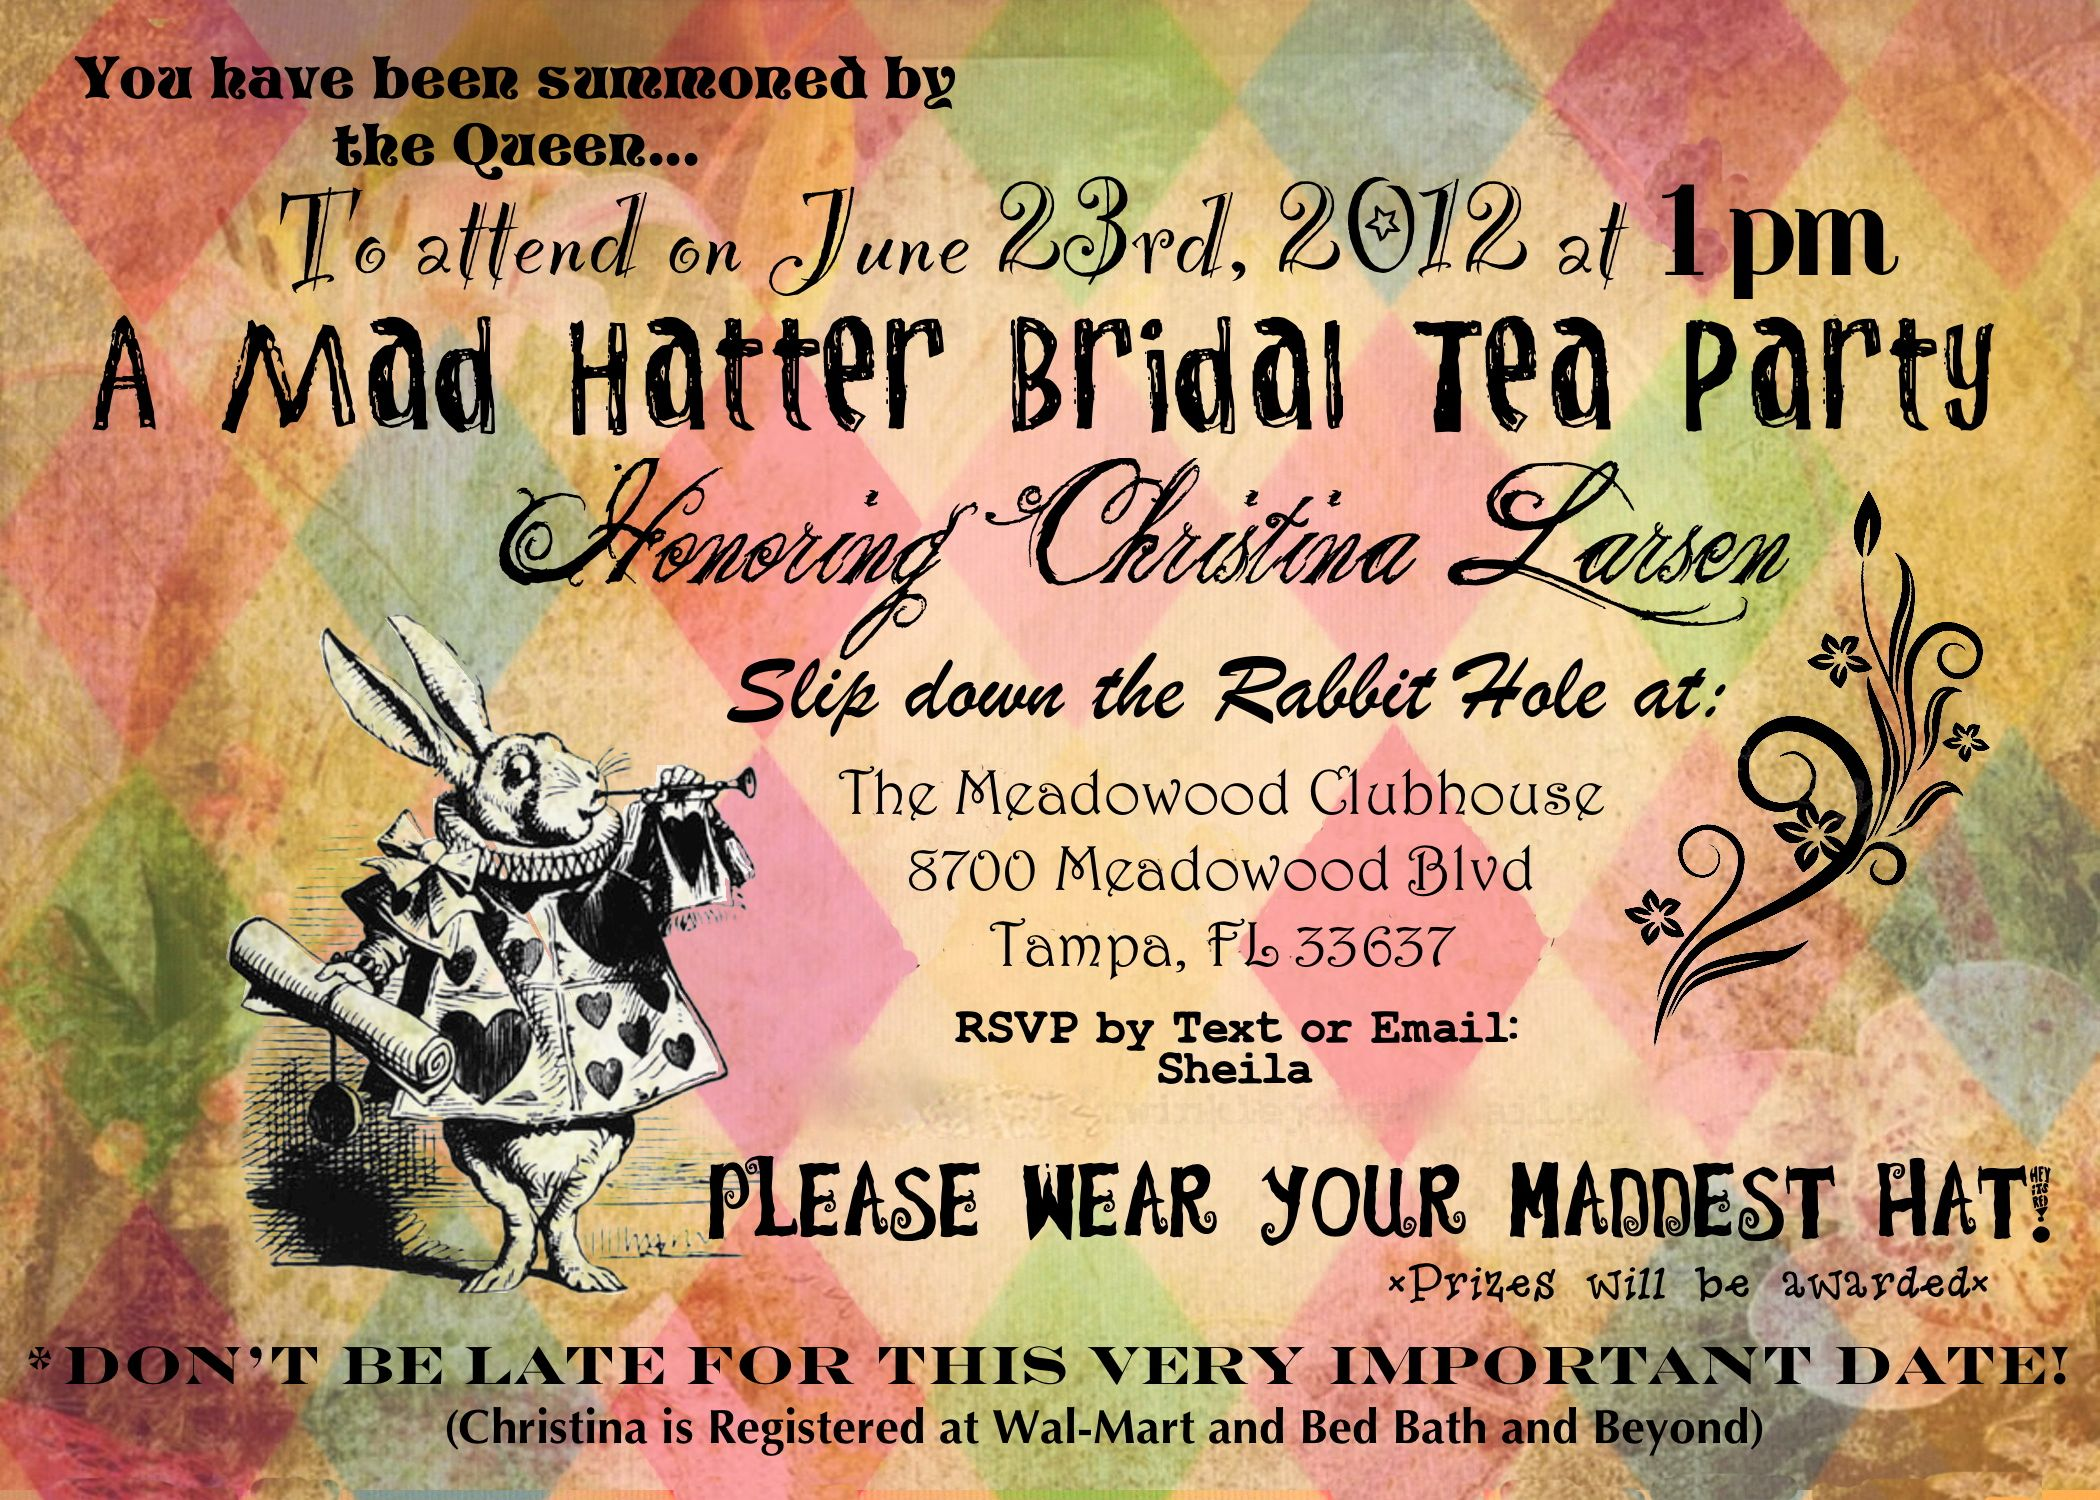 mad hatter tea party shower invitations - Google Search | Mad hatter ...